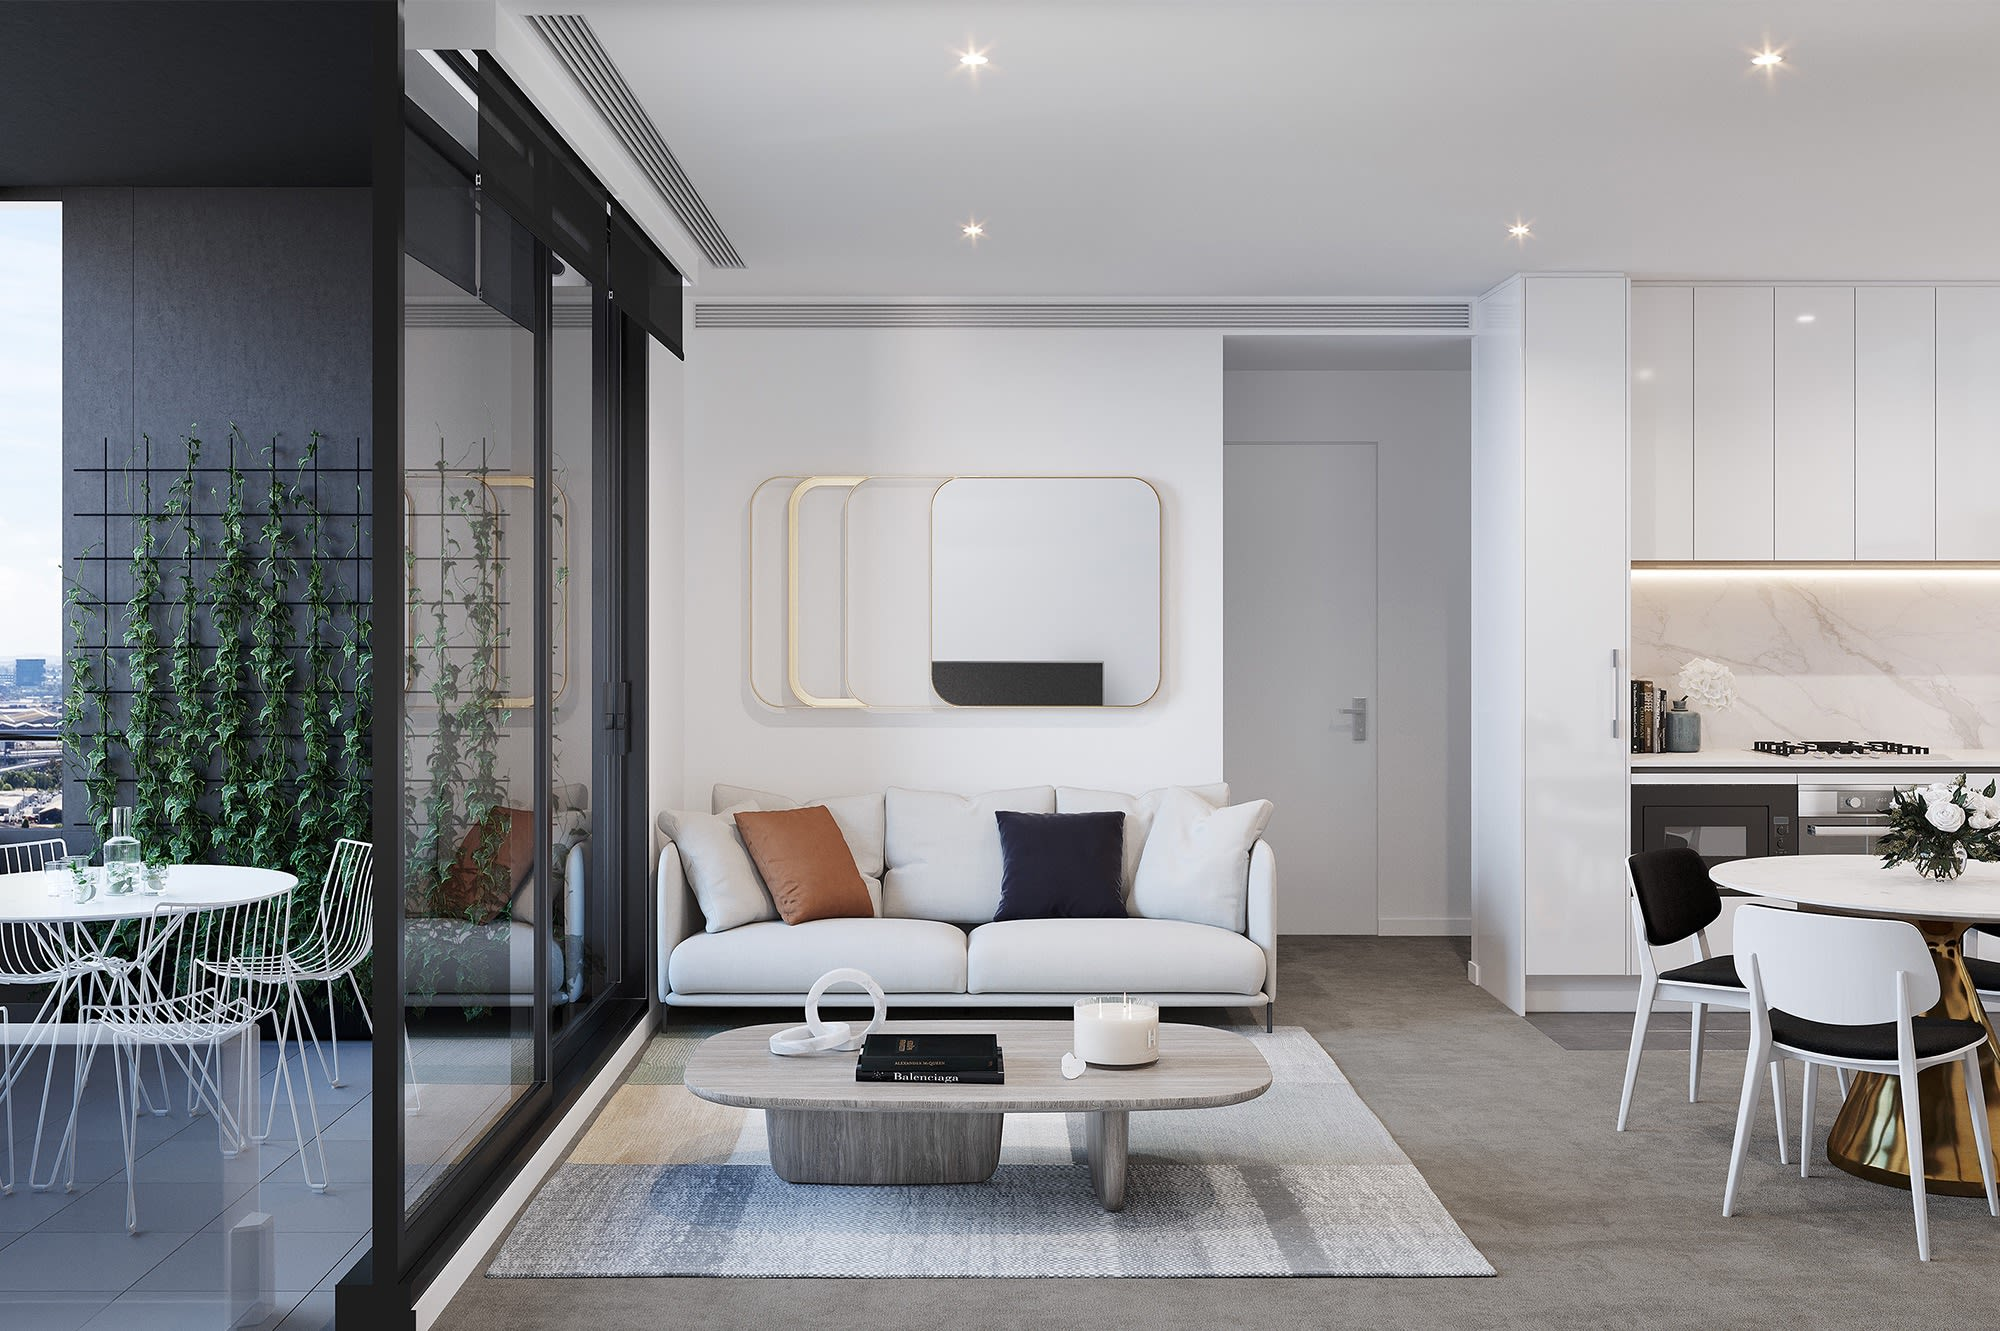 Next-generation apartments at Central Equity's Parkhill Apartments in West Melbourne